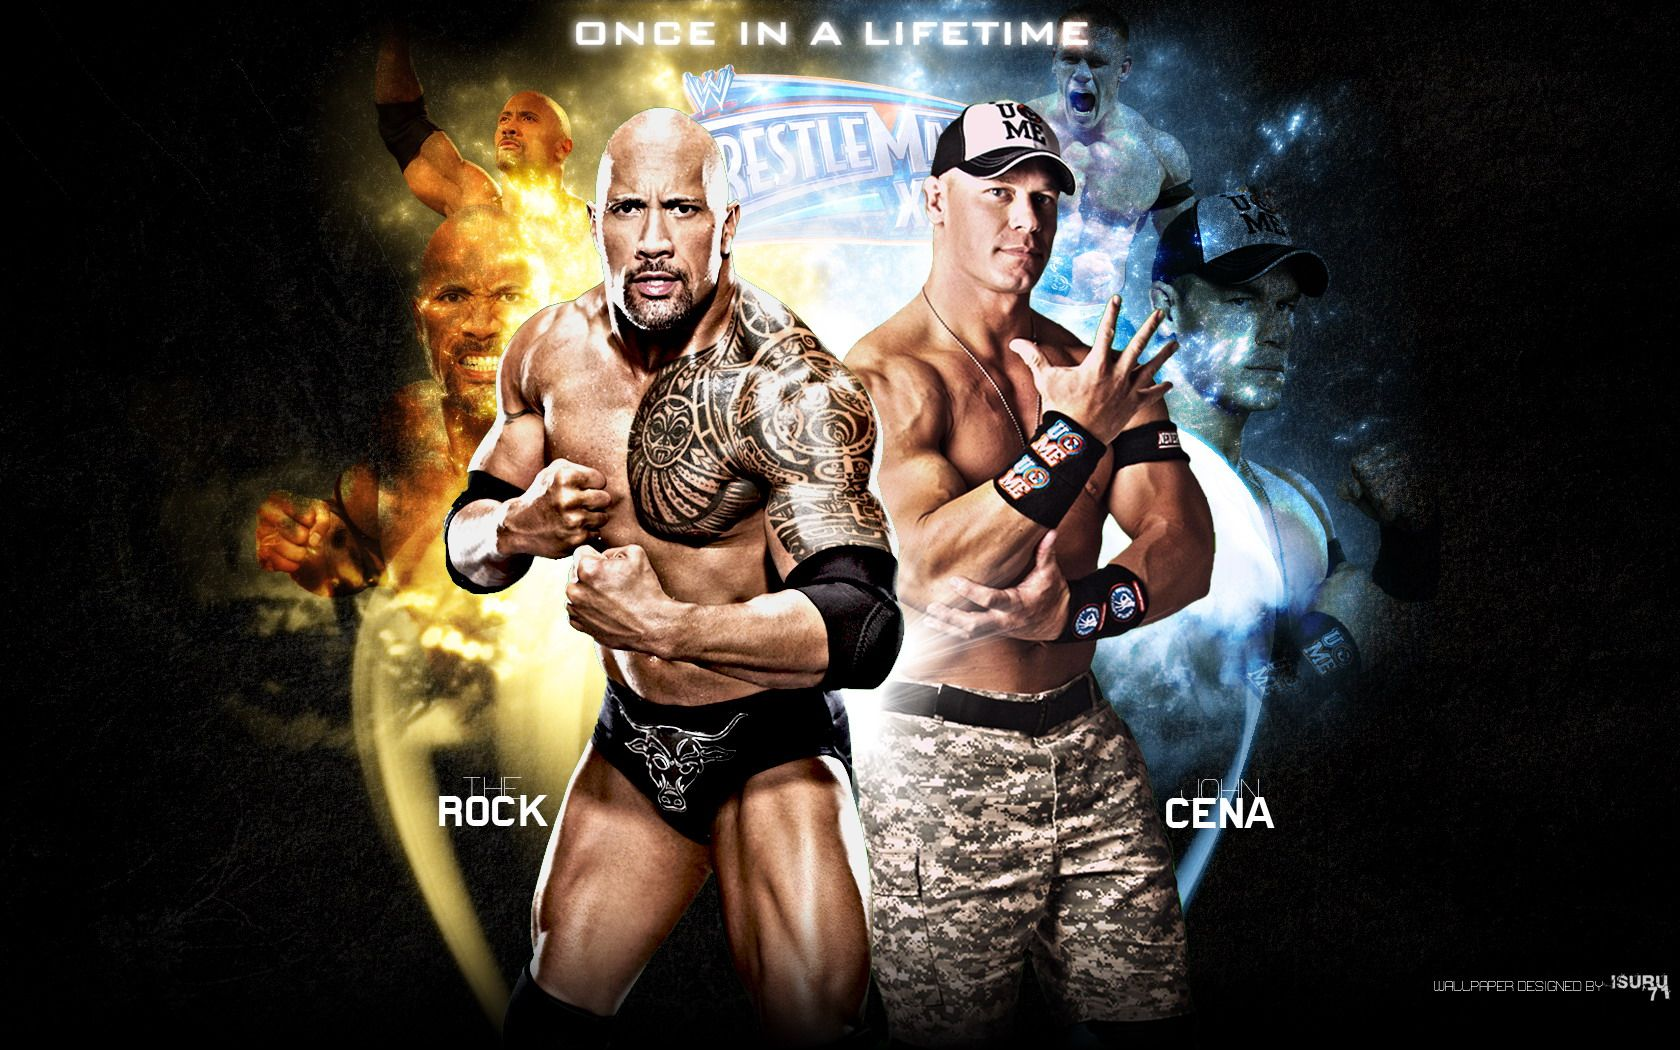 Wallpapers John Cena Wwe The Rock Vs Once In A Lifetime 1680x1050